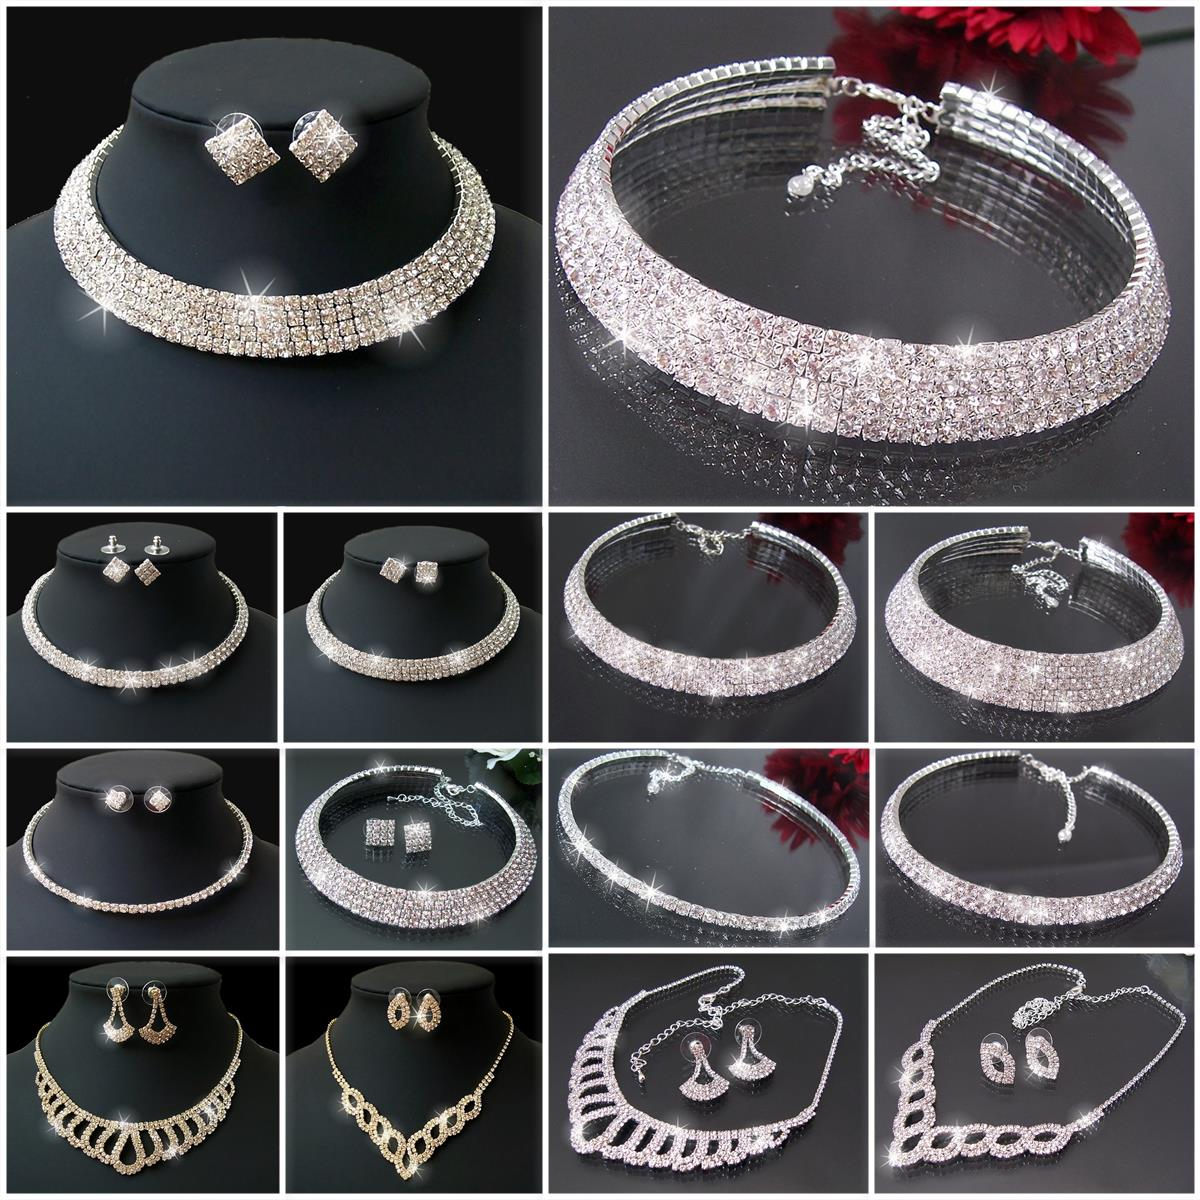 VS12* Collier Choker Ohrringe Armband Strass Schmuck Set Neu